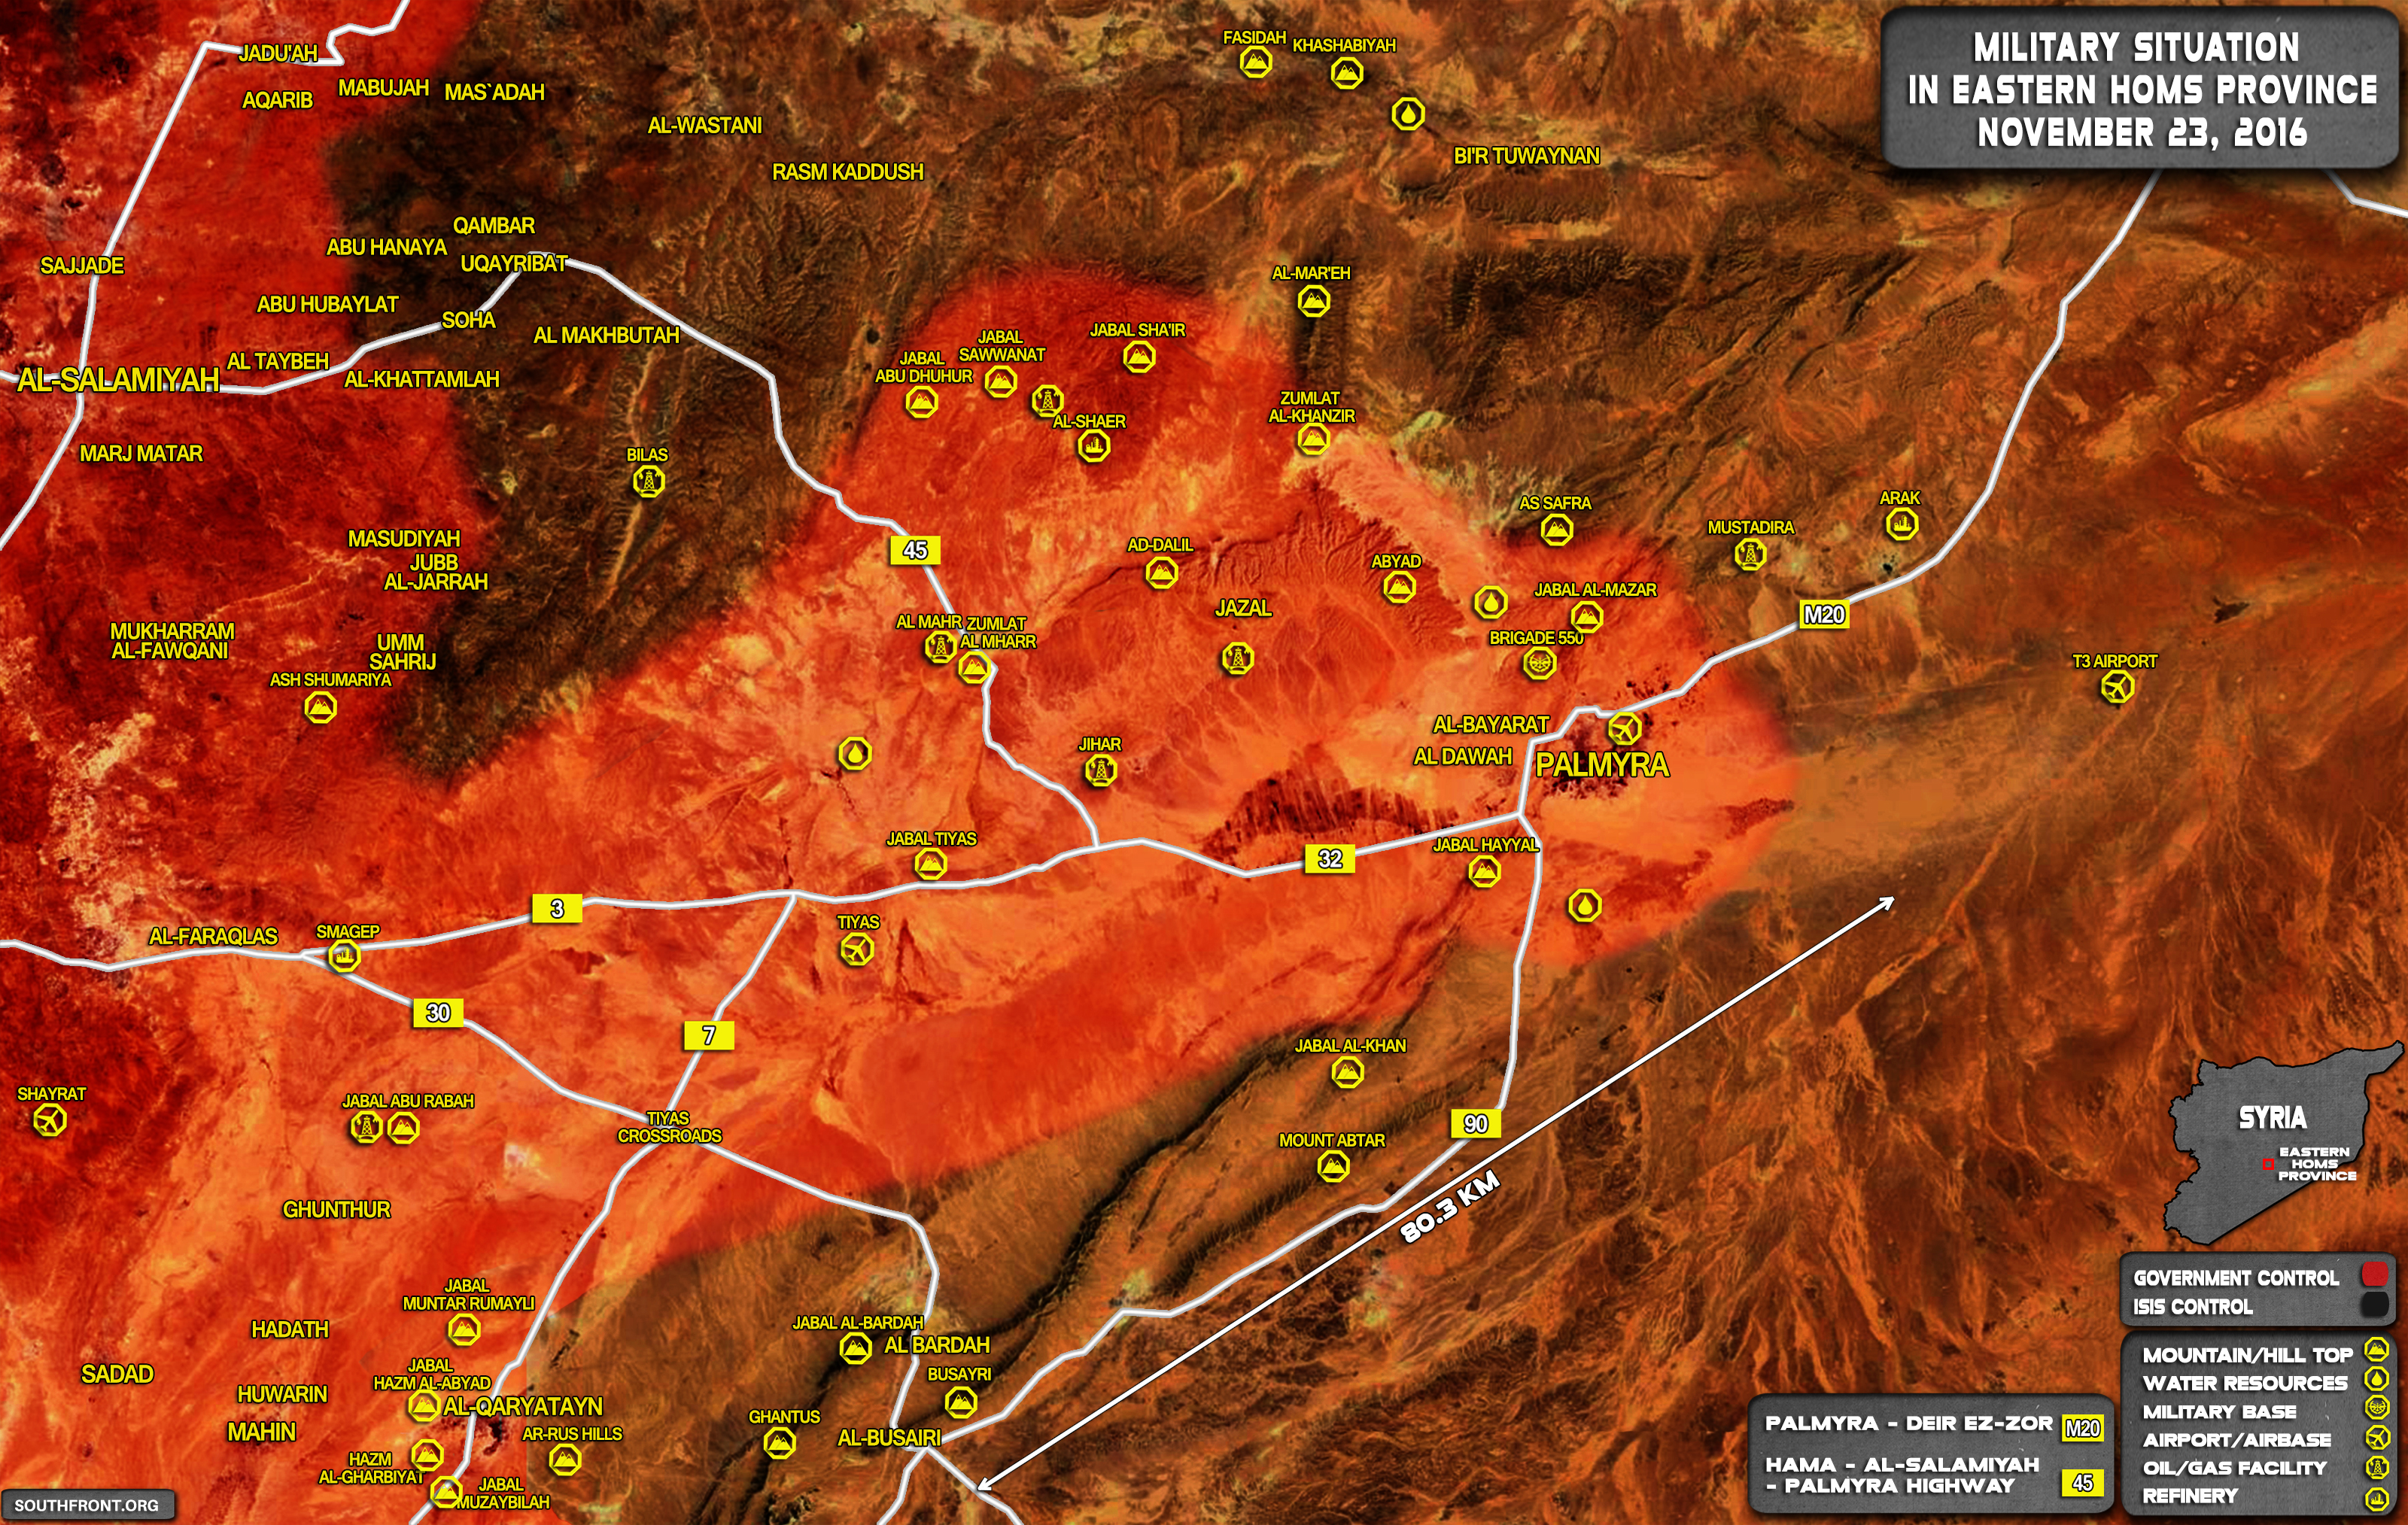 Syria Map Update Military Situation in Eastern Homs on November 23